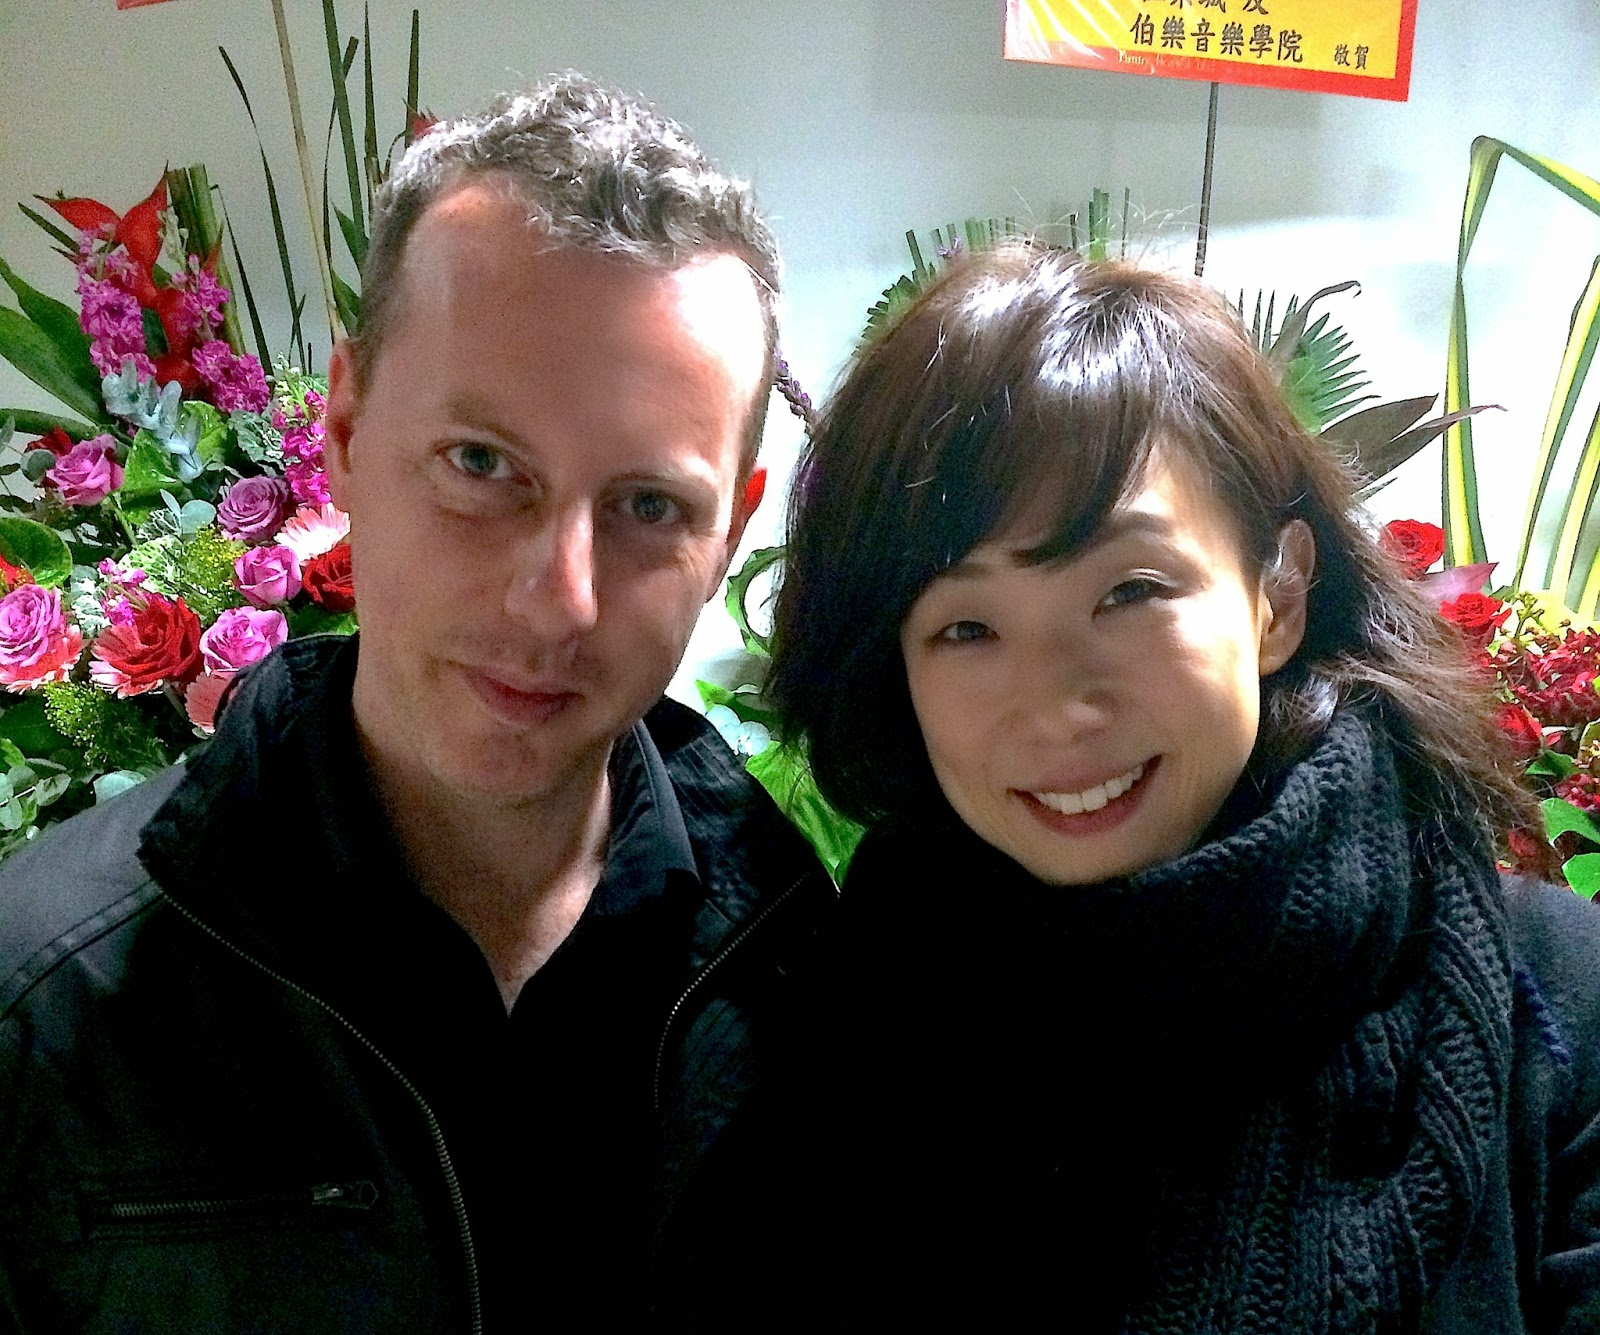 Spencer Douglass and Sandy Lam 林憶蓮